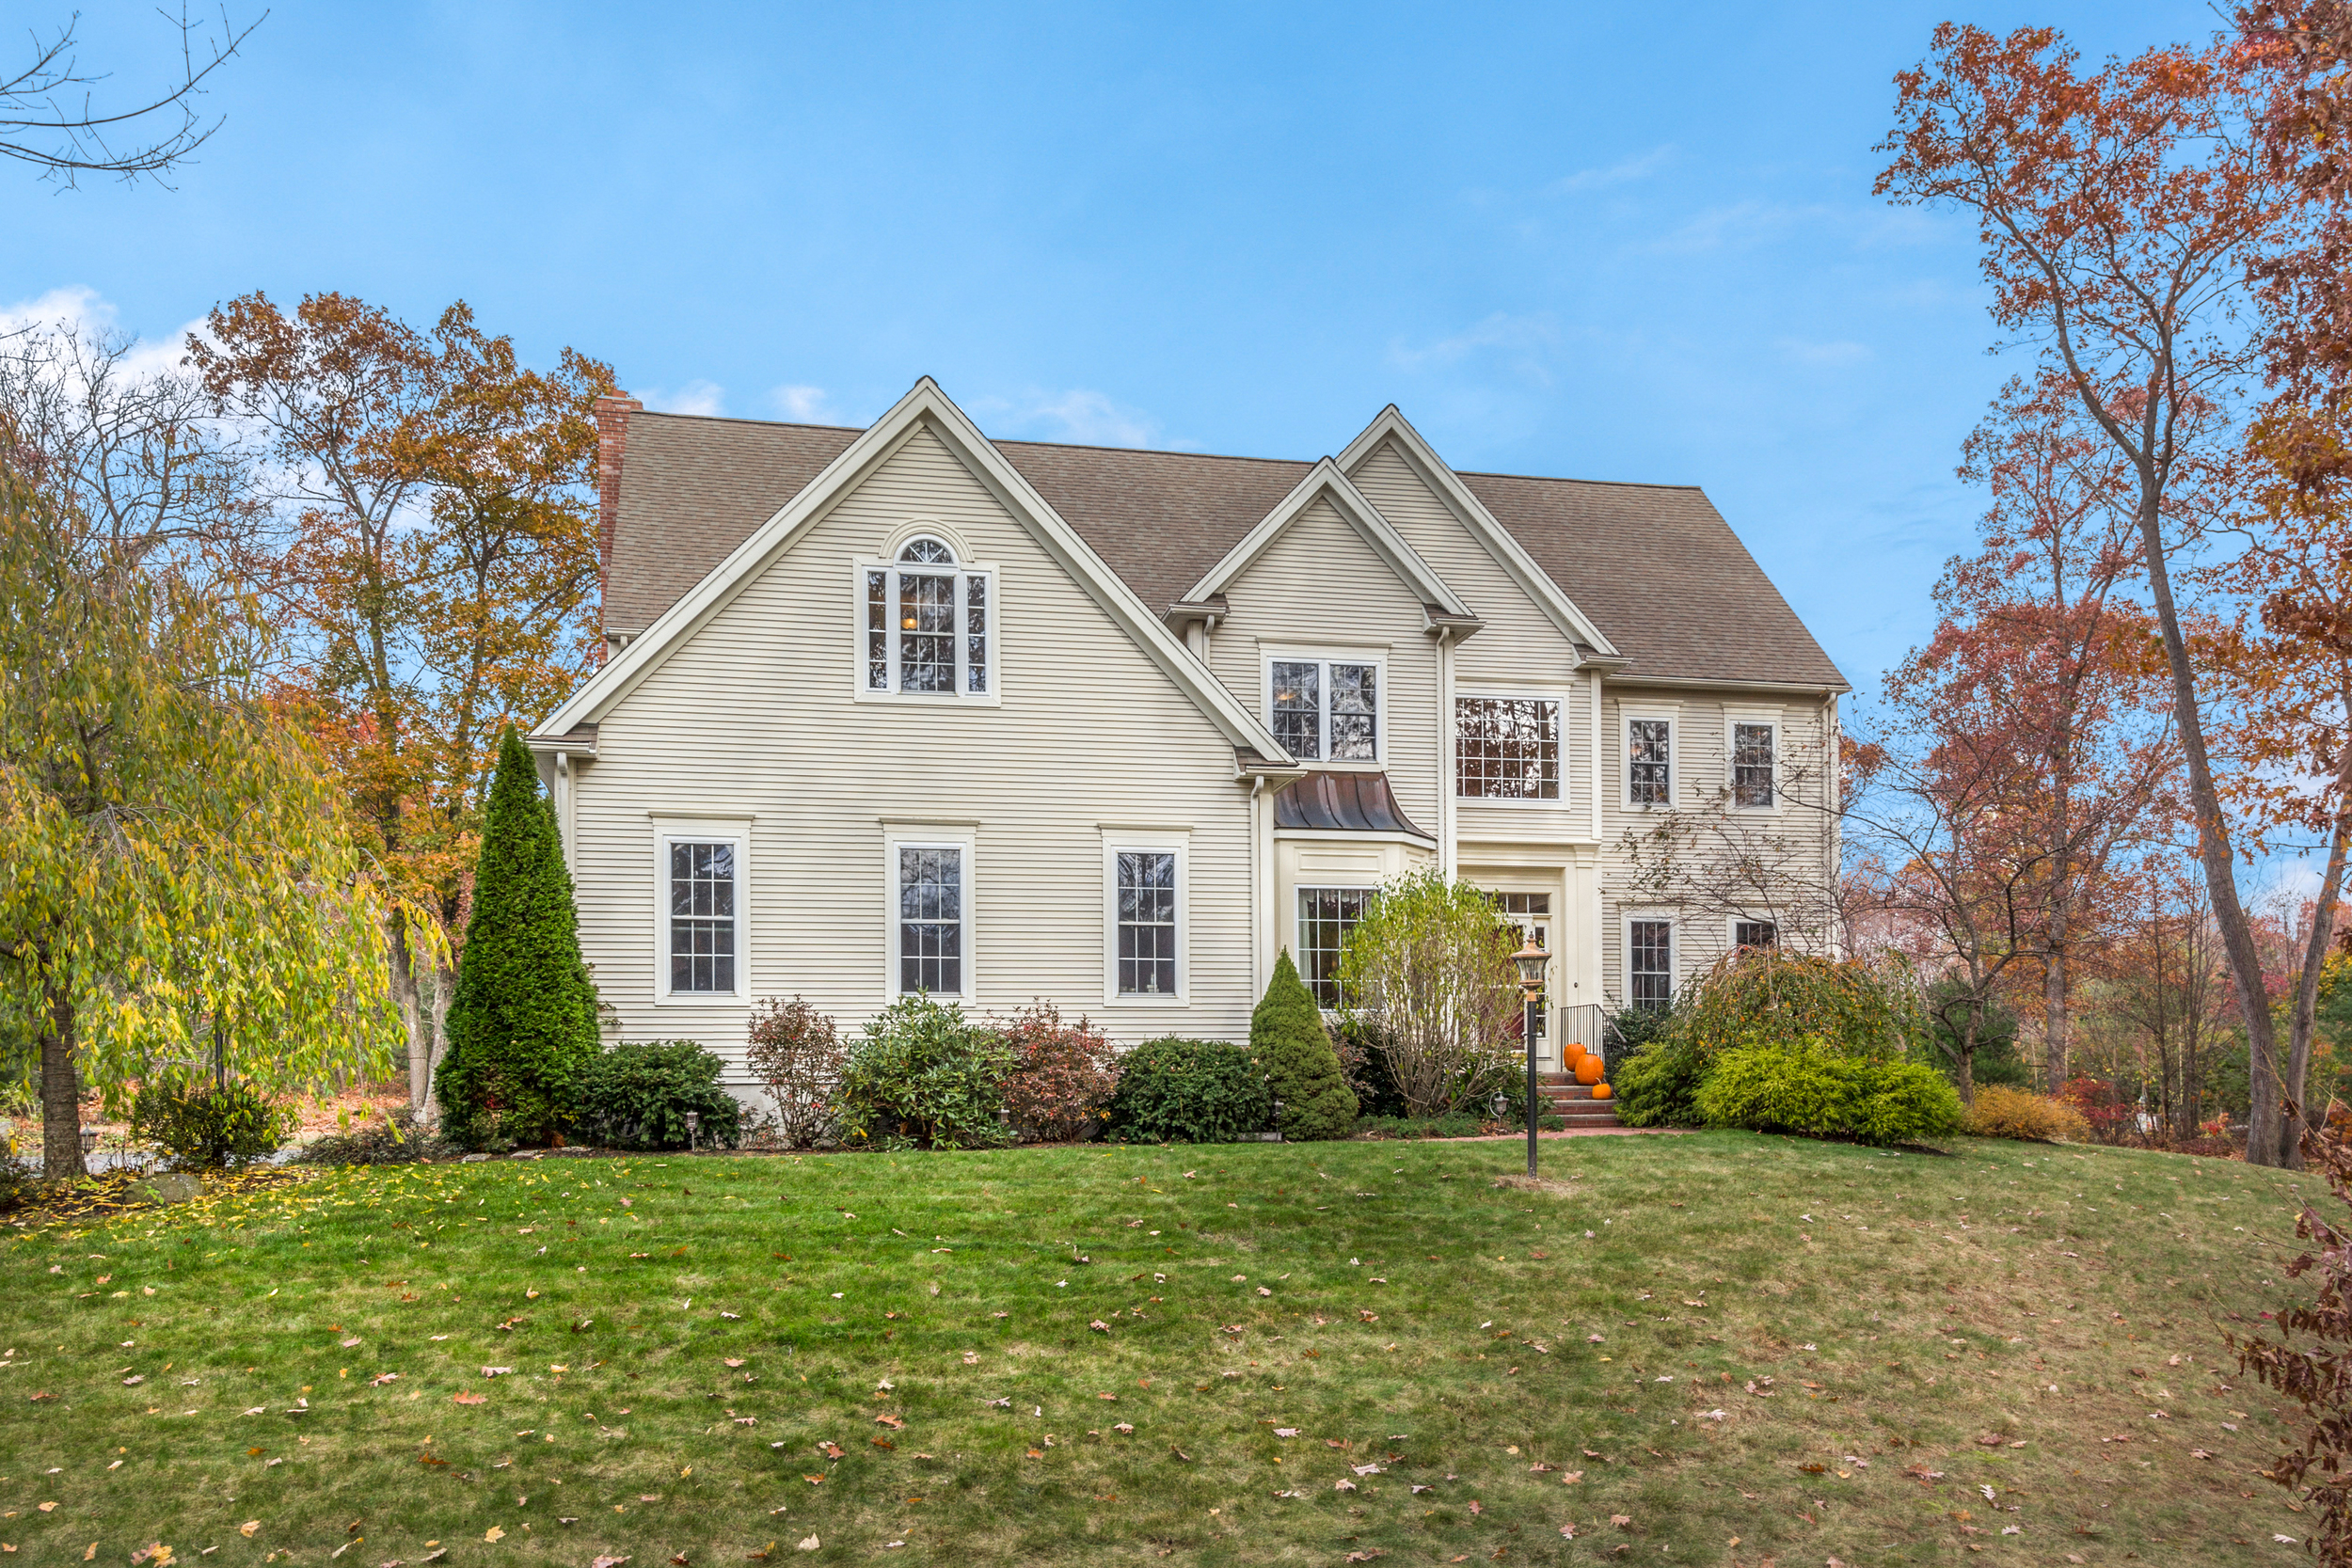 5 Dudley Rd. Mendon - Sold $535k (Sell Side)